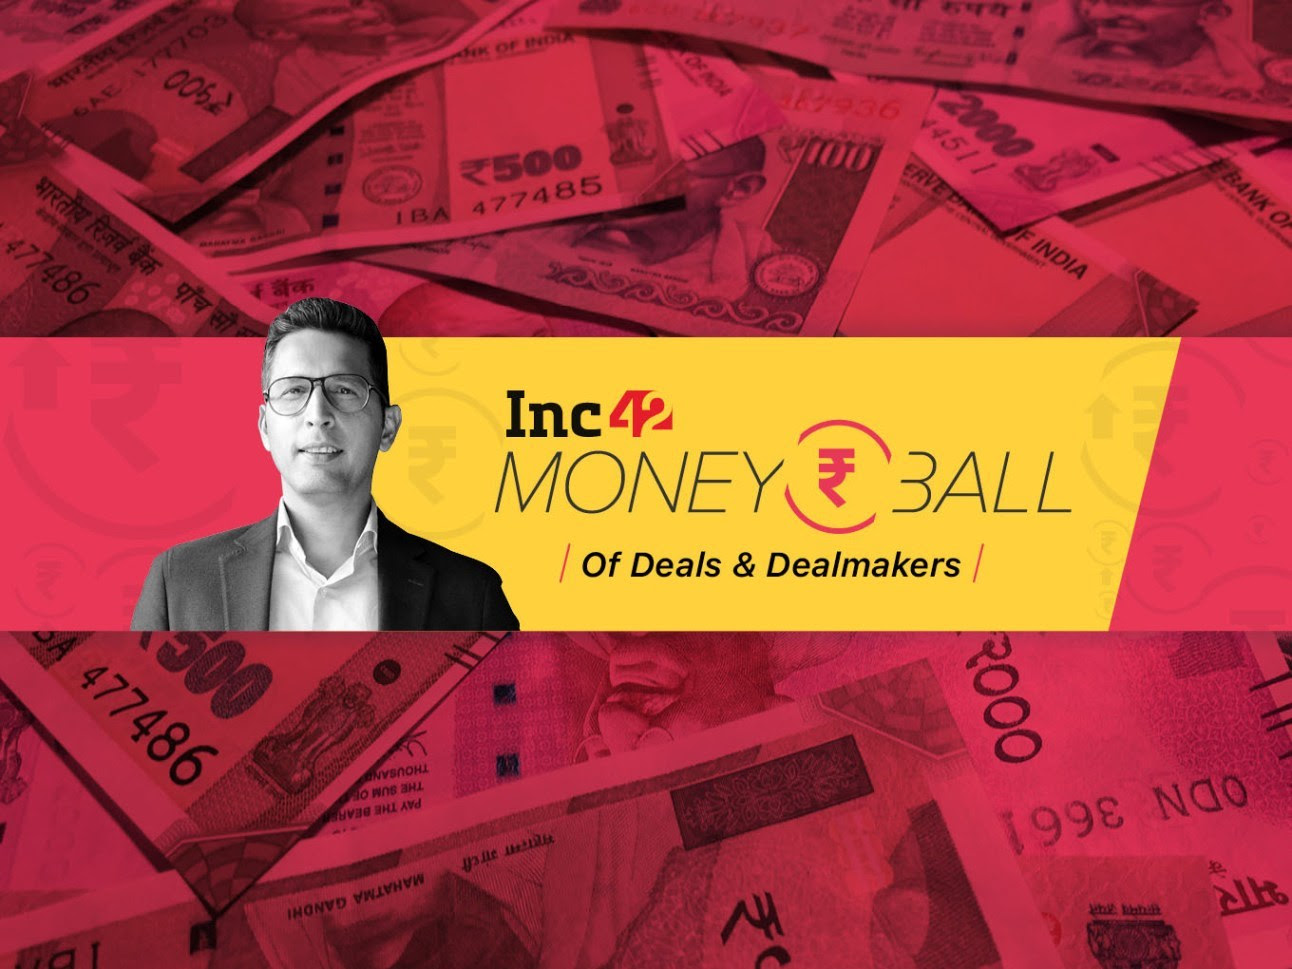 Moneyball: Rahul Khanna of Trifecta Capital Recognises The Hunger Of First-Generation Entrepreneurs